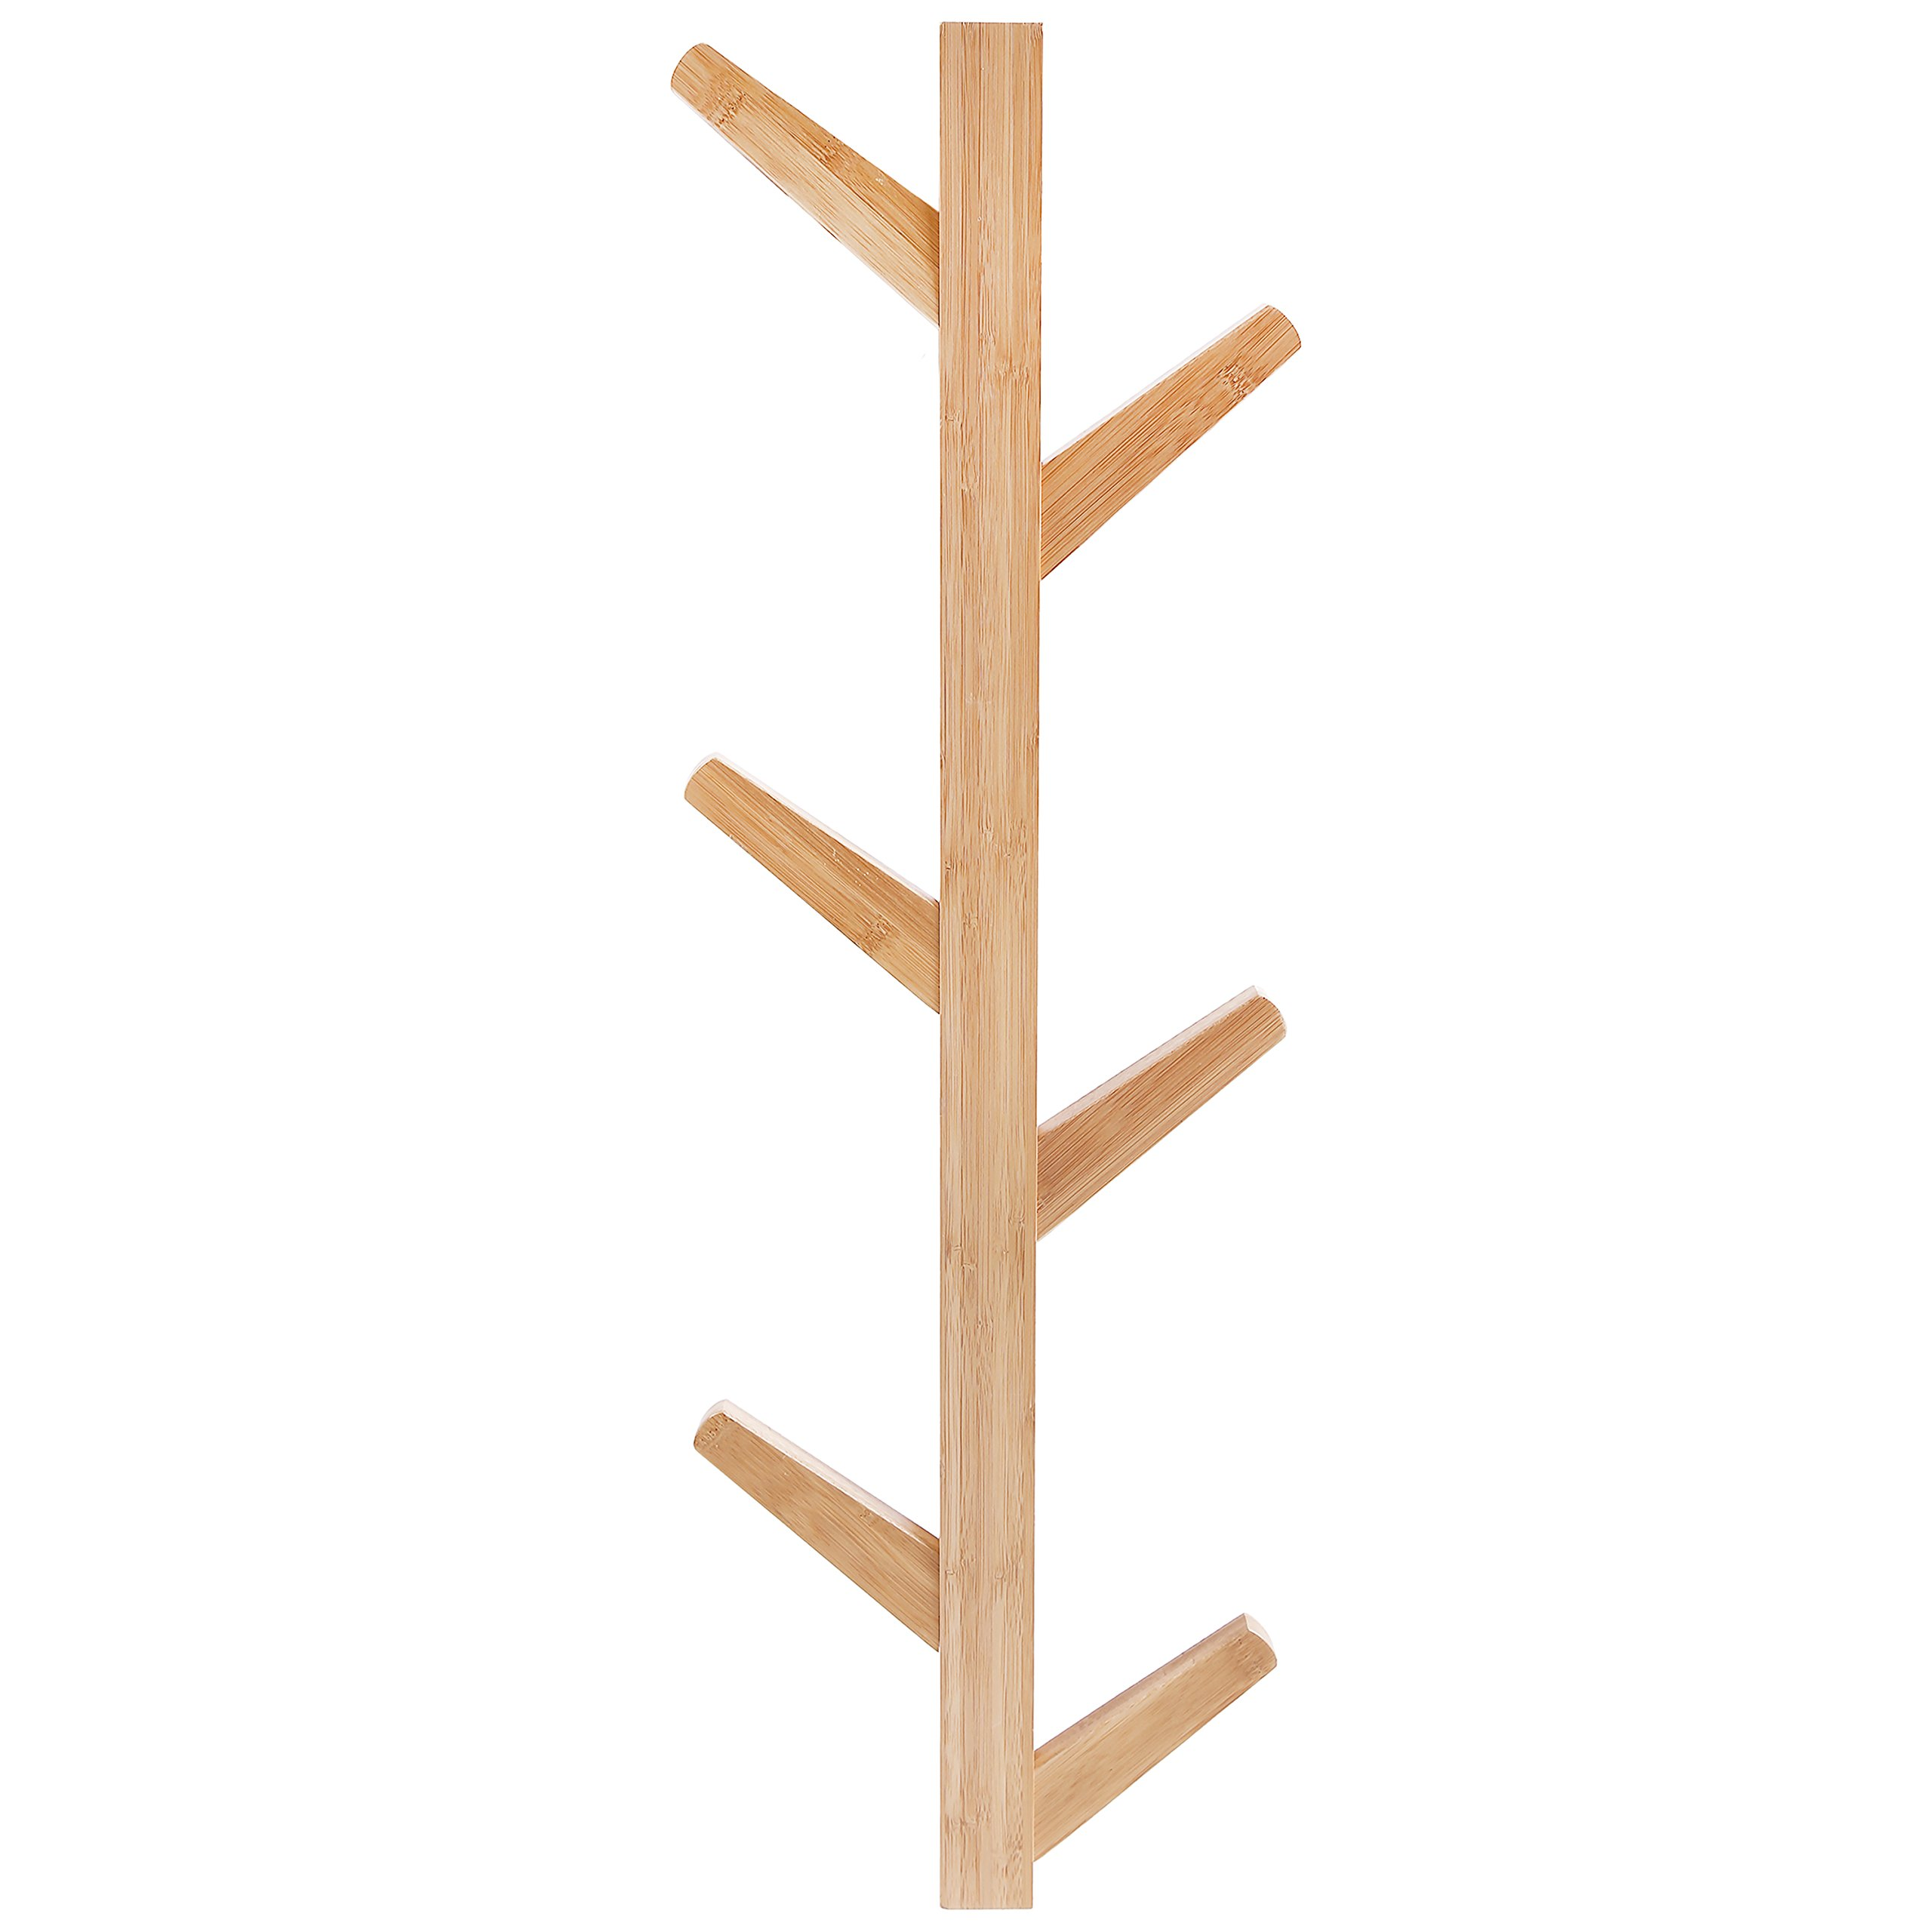 6-Hook Wall Mounted Natural Bamboo Wood Tree Branch Design Coat Rack